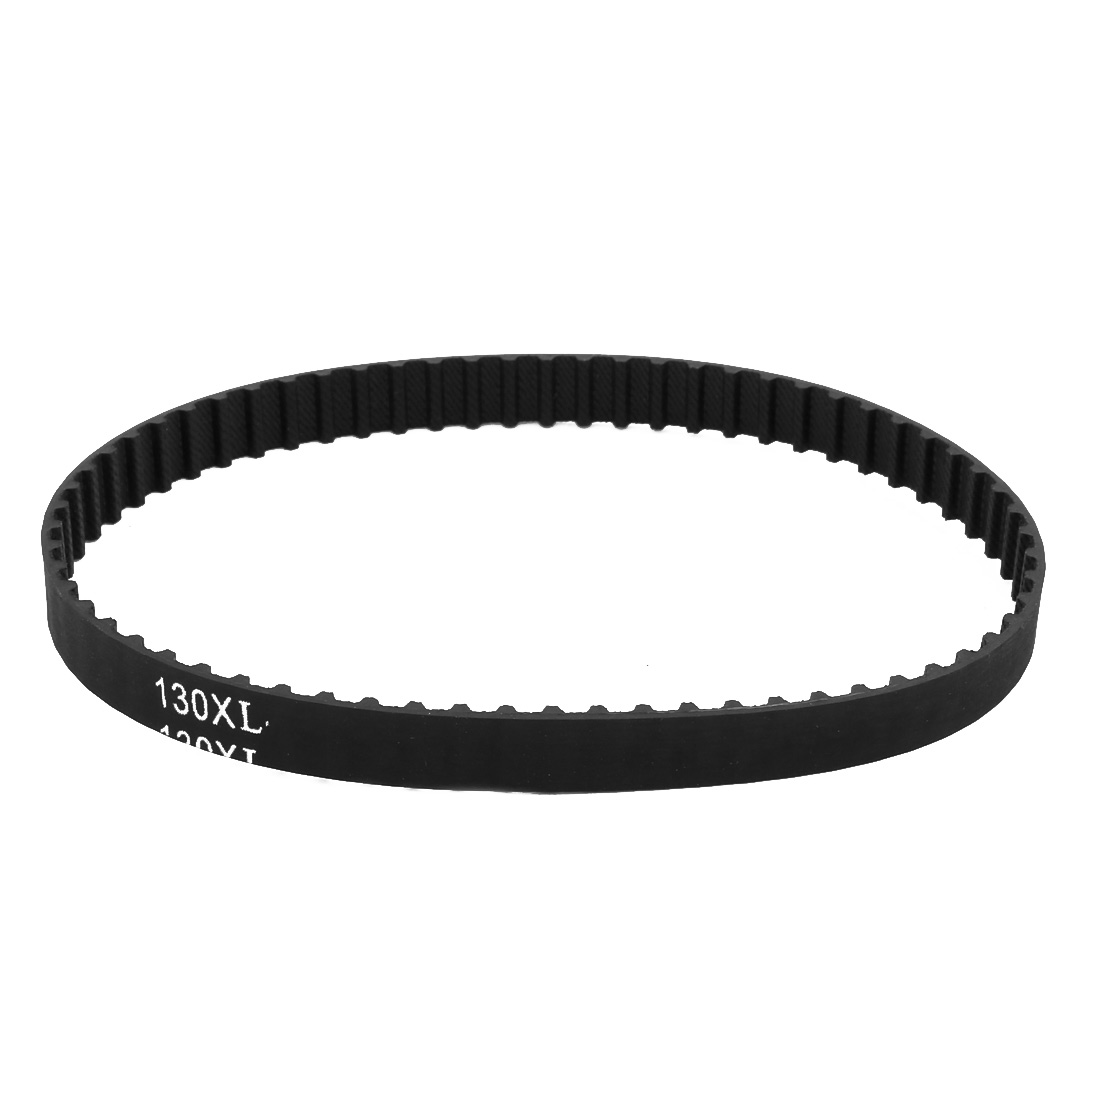 130XL 65 Teeth 10mm Width 5.08mm Pitch Stepper Motor Rubber Timing Belt Black